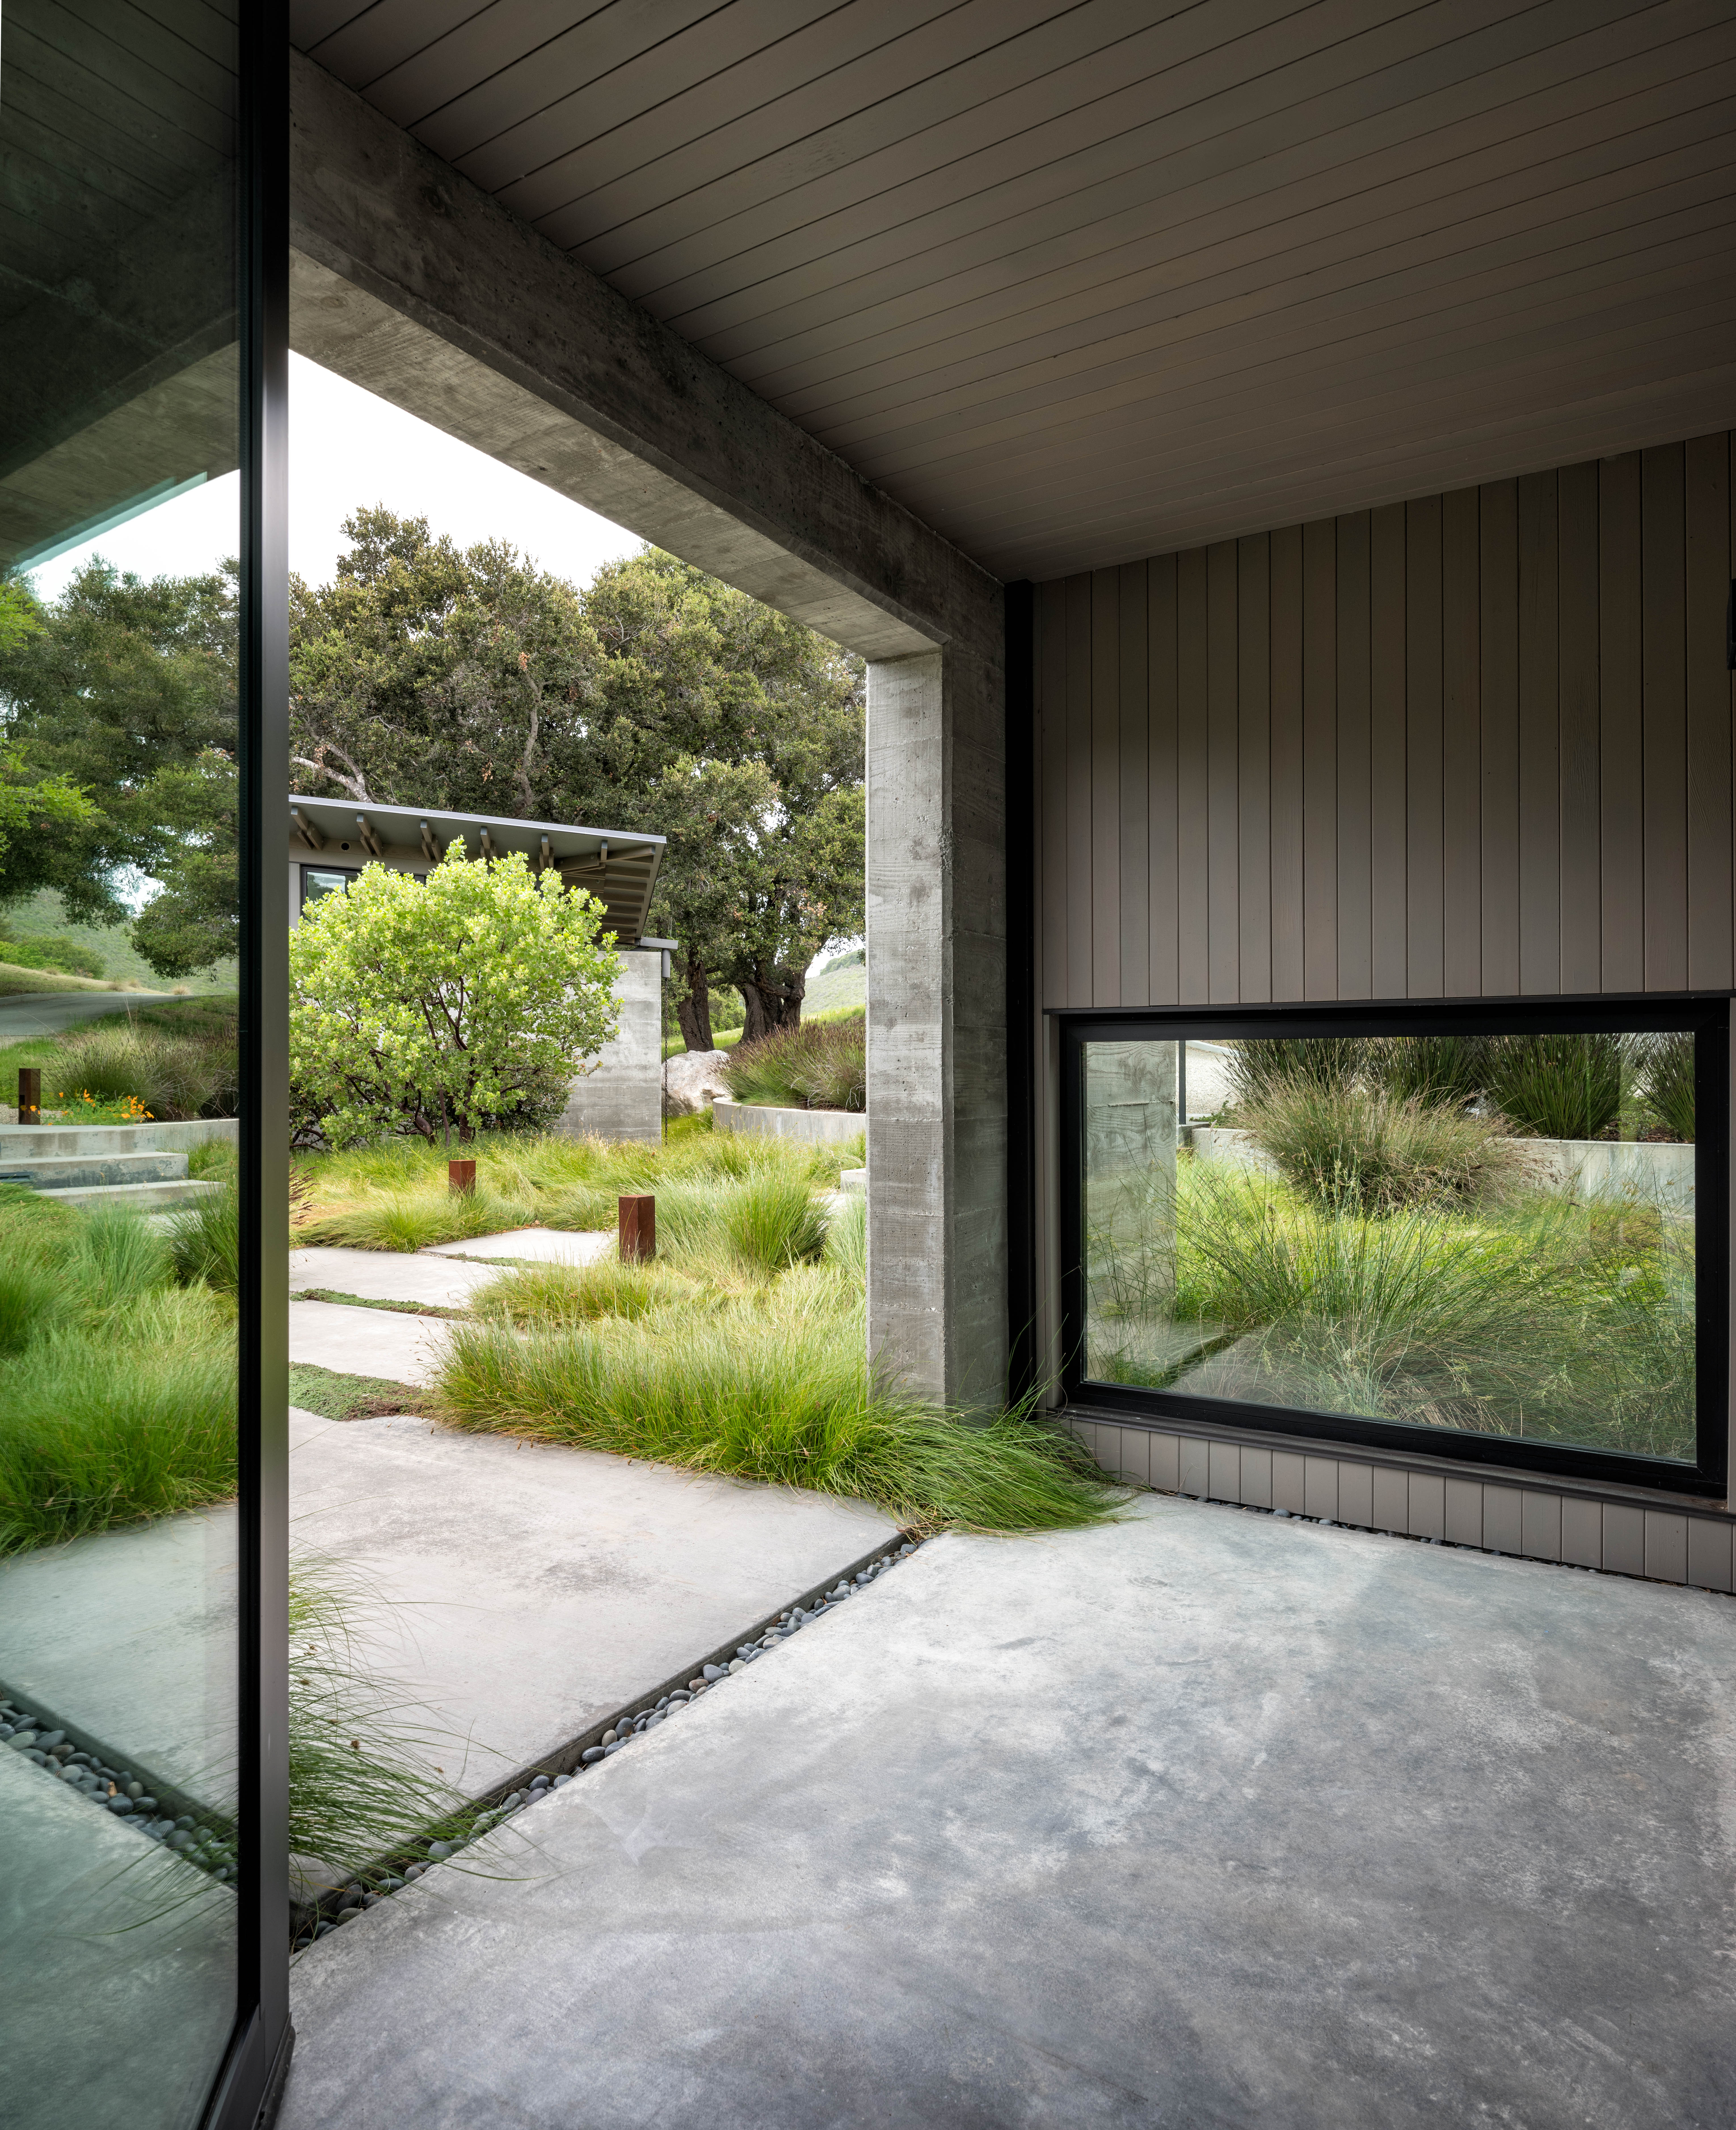 The clients wanted to connect indoor and outdoor spaces.